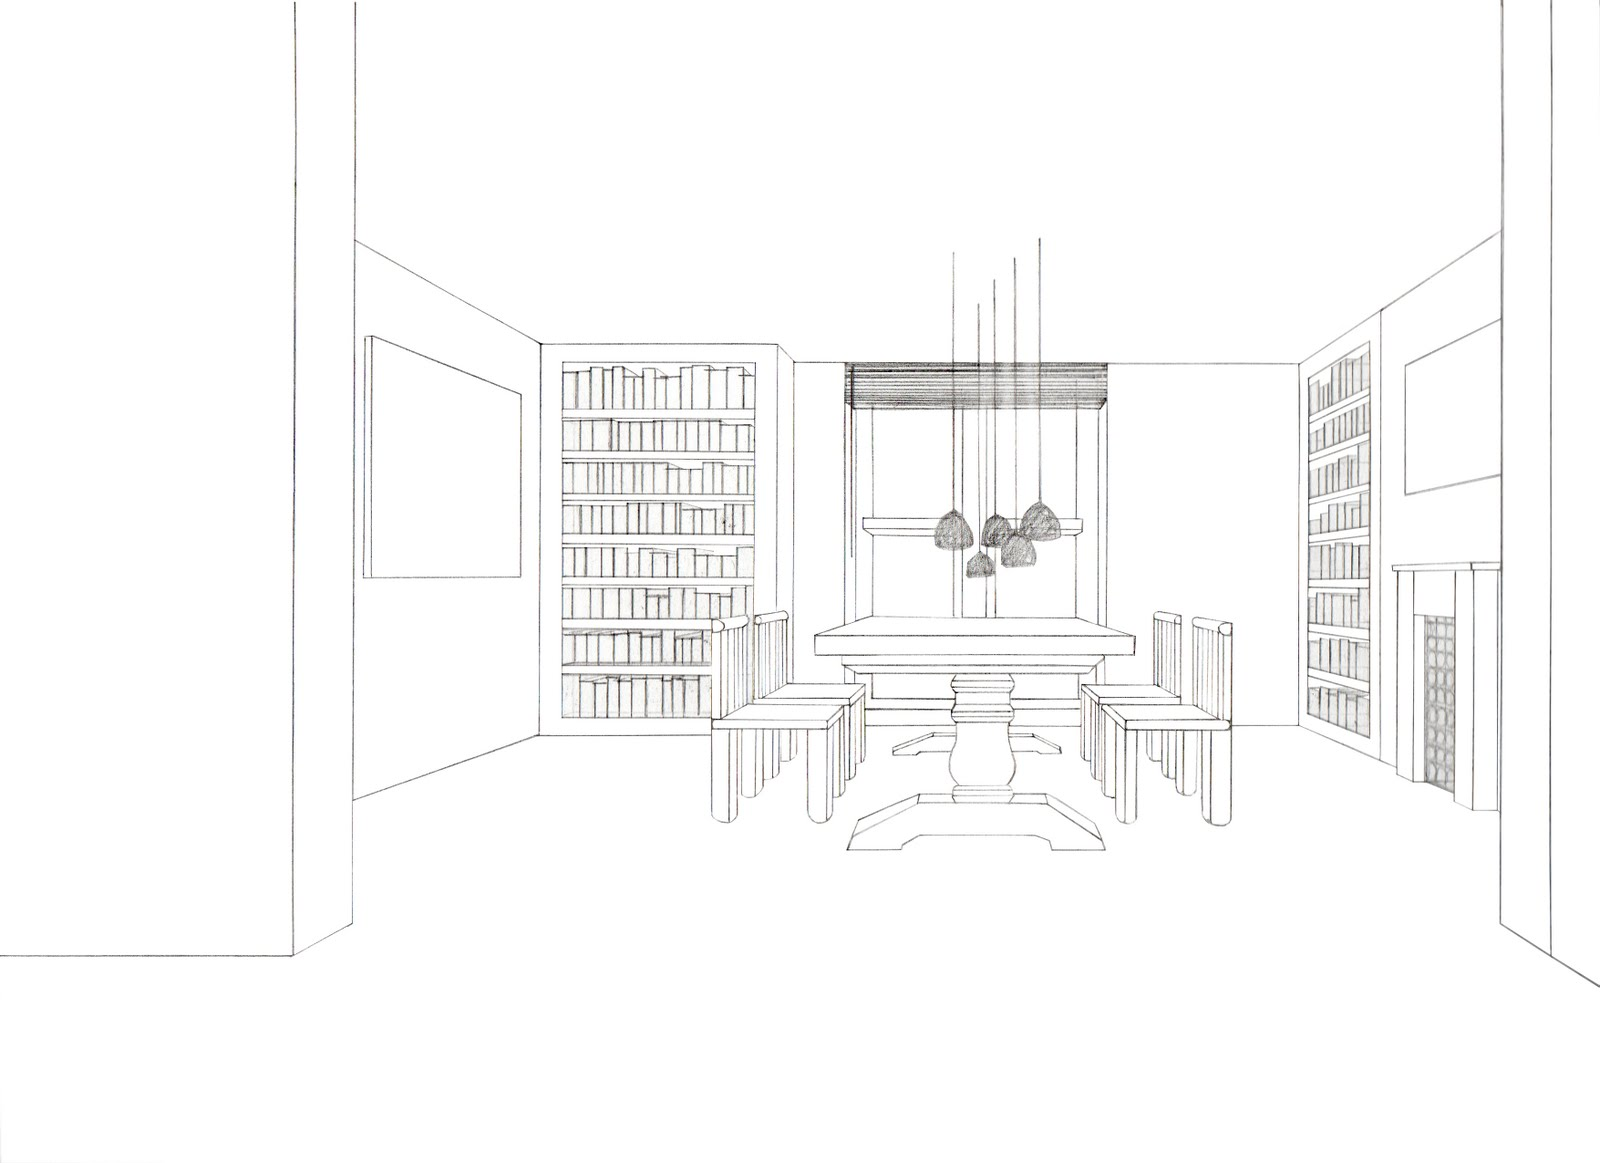 Alesya bolotina set designer model maker the for Dining room drawing